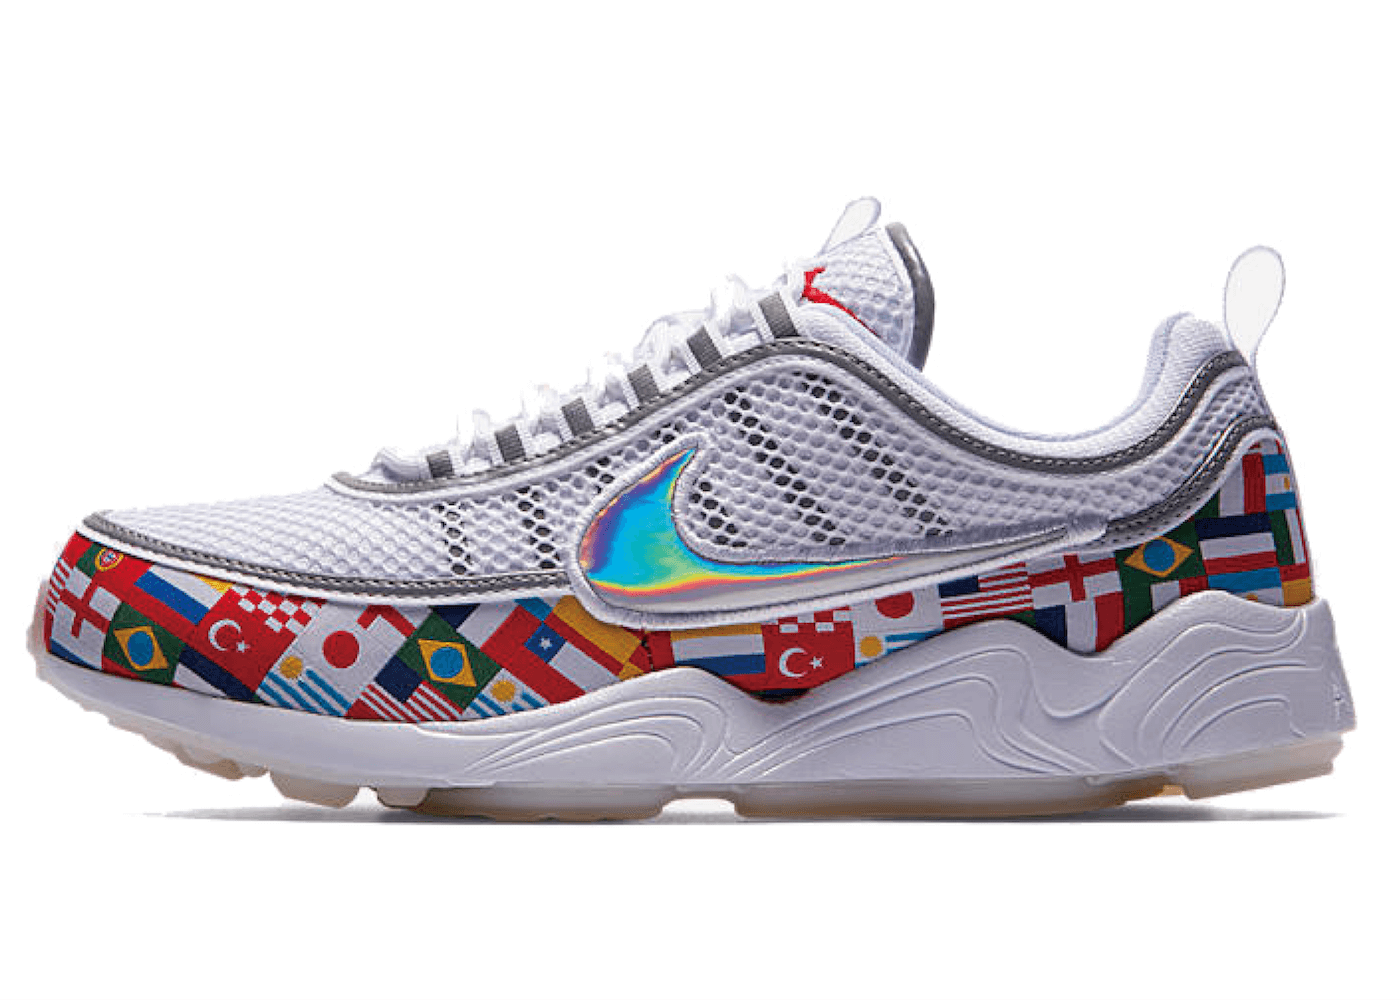 NIKE AIR ZOOM SPIRIDON '16 NIC QS WHITE/MULTI-COLORの写真